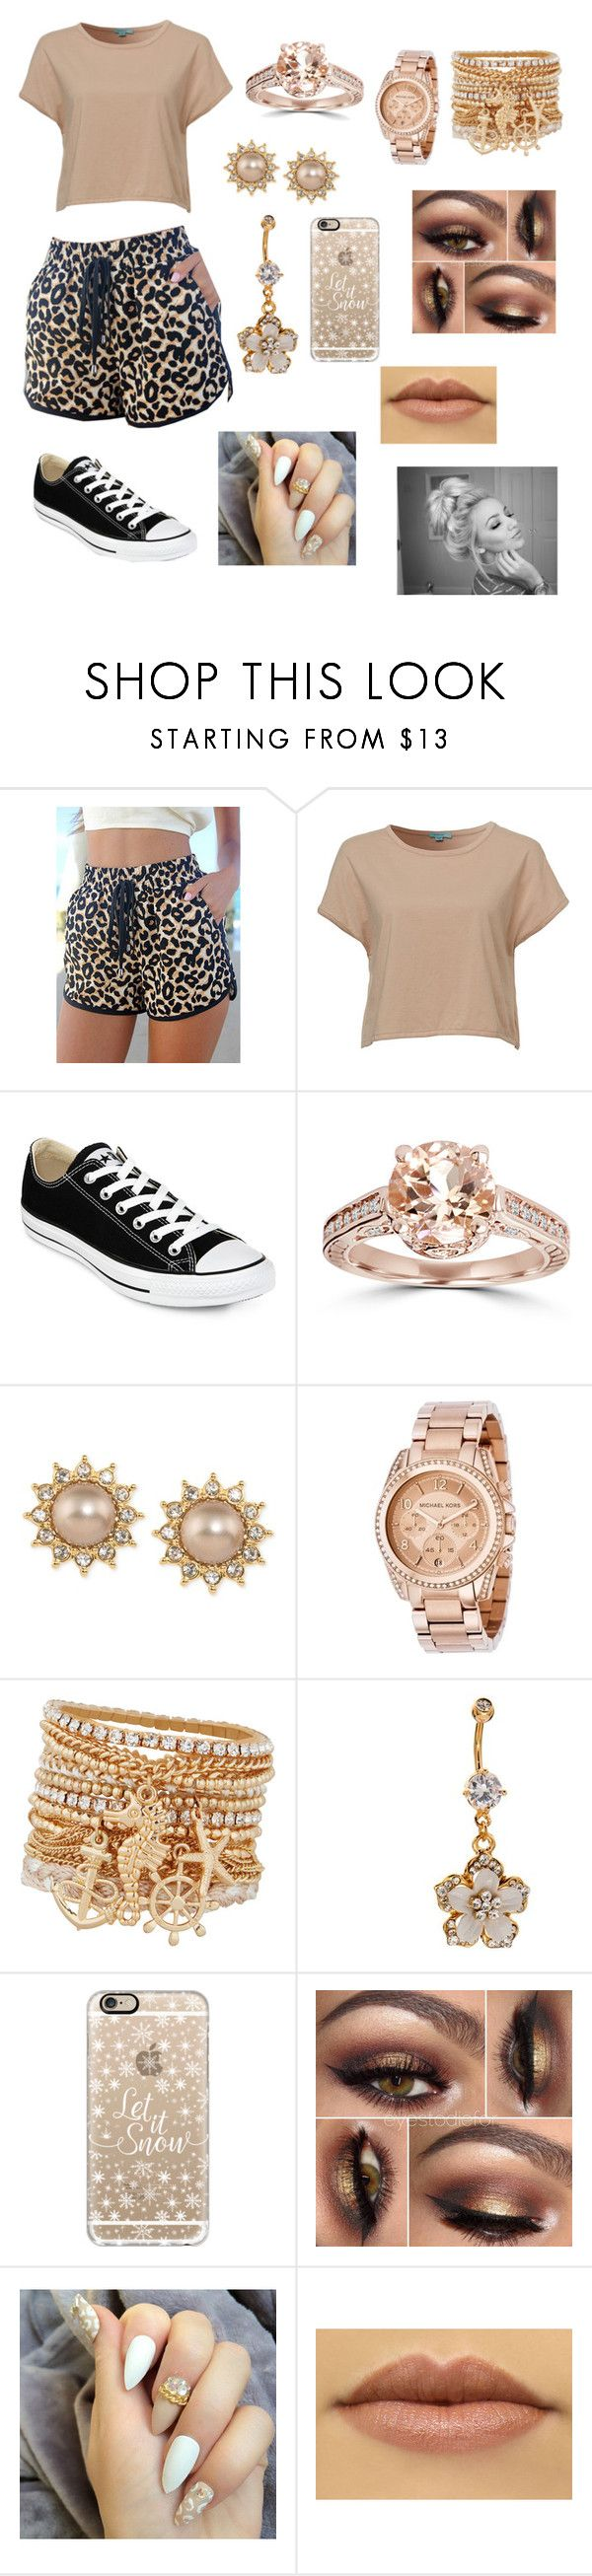 """Going to the gym girly style"" by naynayfamily ❤ liked on Polyvore featuring beauty, Mavi, Converse, Carolee, Michael Kors, ALDO and Casetify"